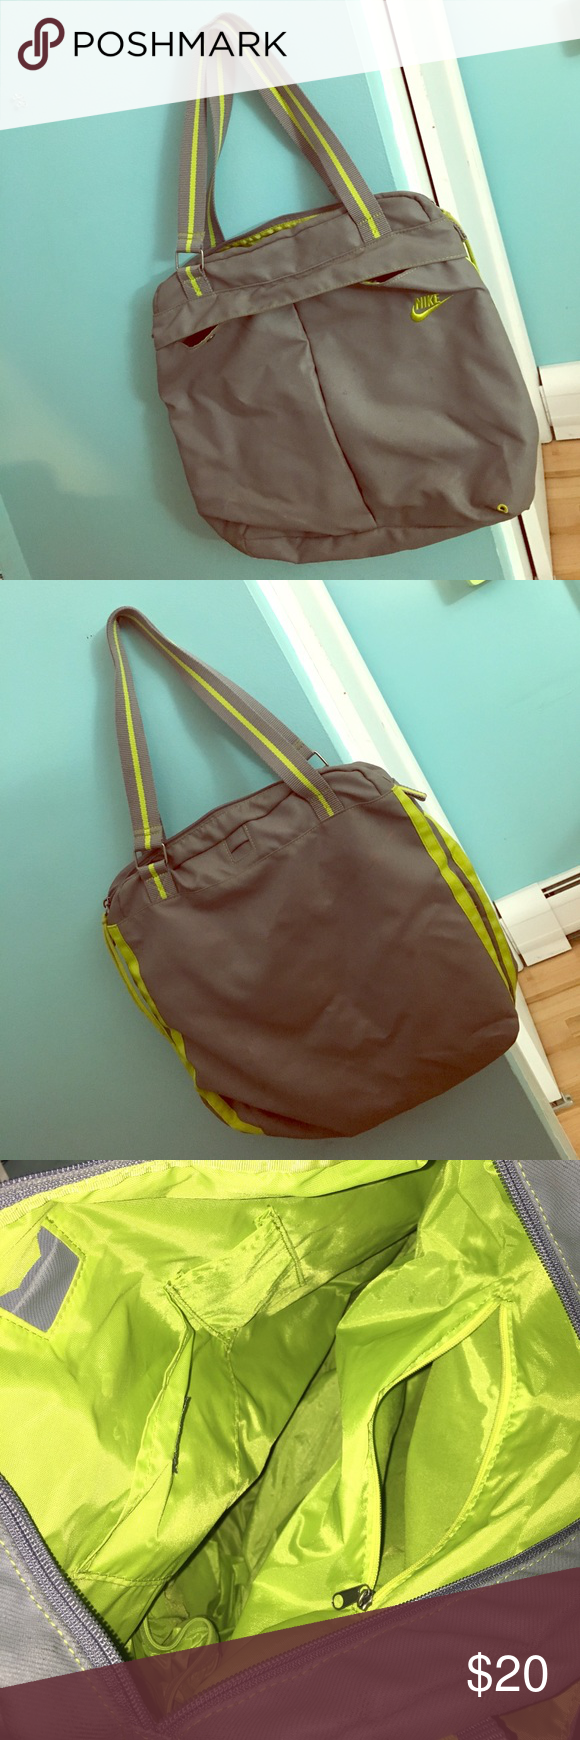 Nike Sports Bag Holds a pair of sneakers on the side and has a bunch of handy pockets inside! Nike Bags Shoulder Bags